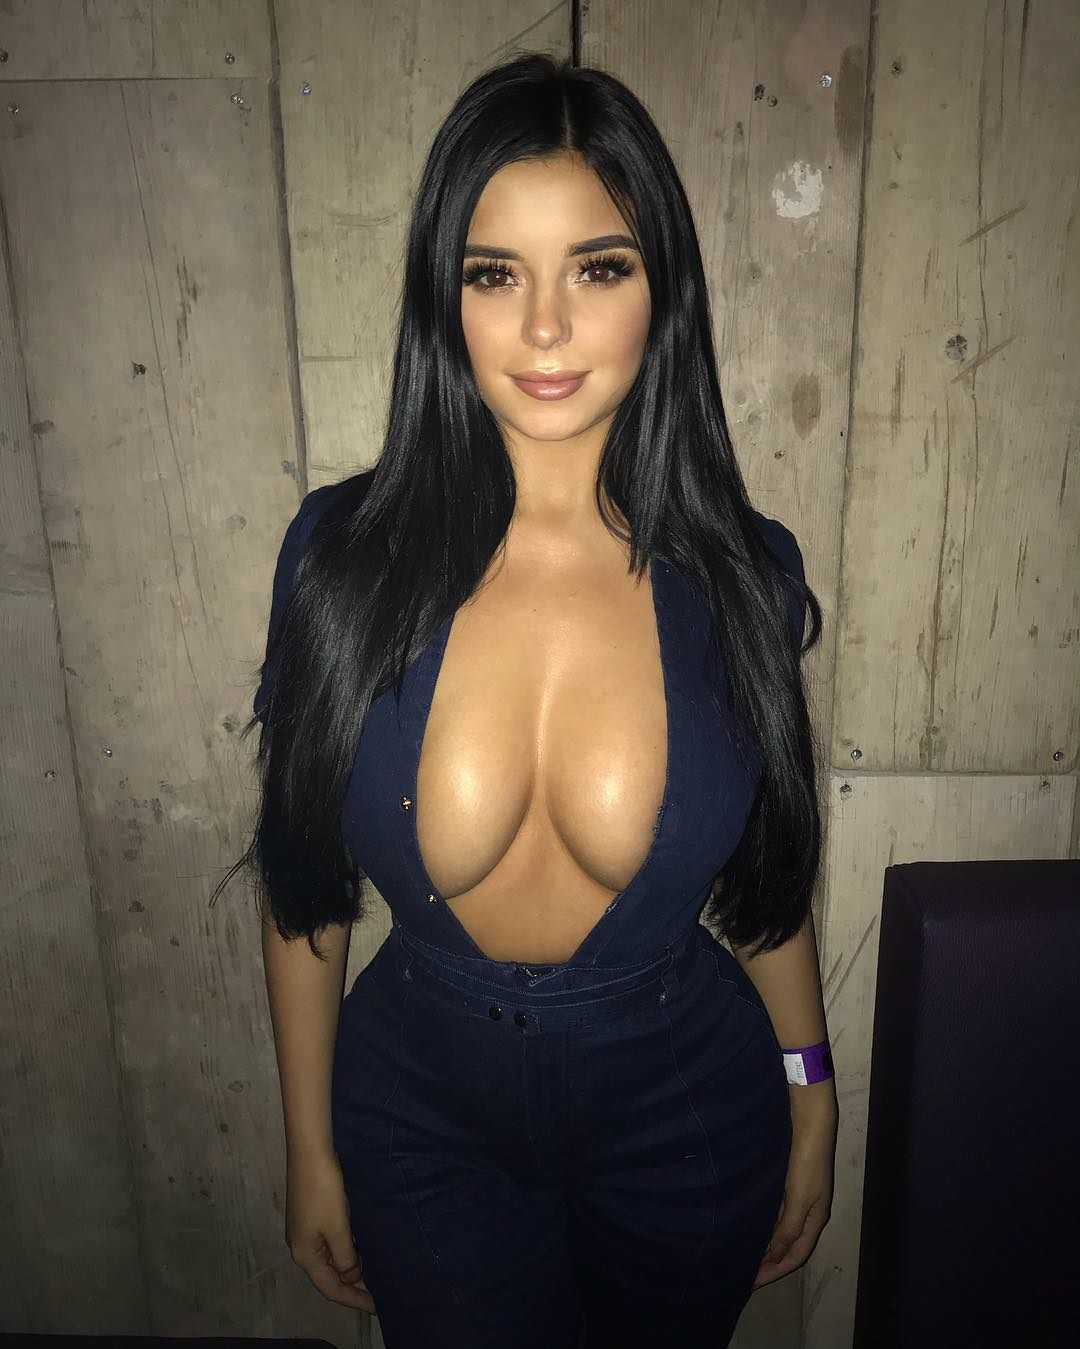 demi rose mawby (x-post from /r/juicybabes) | demi rose mawby, demi